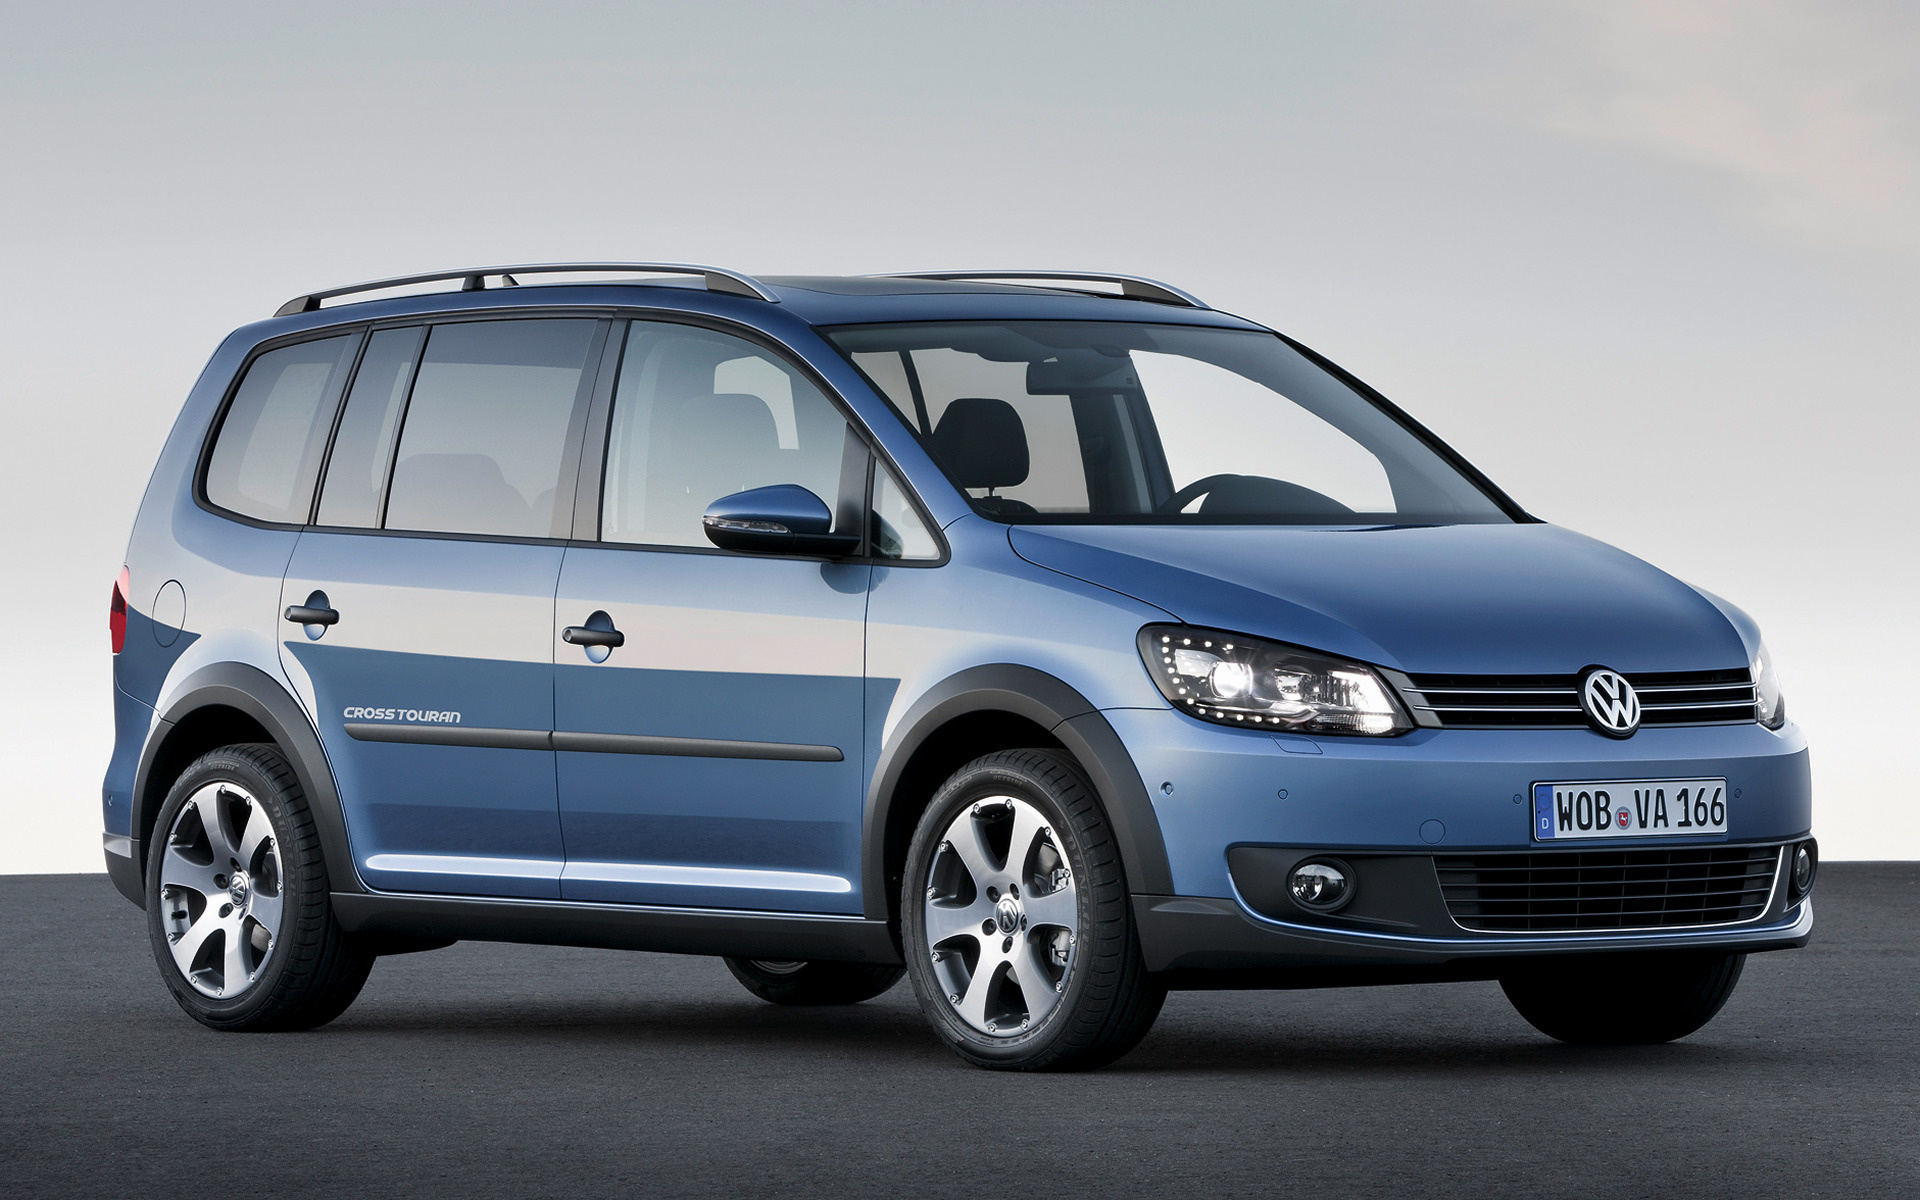 volkswagen cross touran 2010 wallpapers and hd images. Black Bedroom Furniture Sets. Home Design Ideas